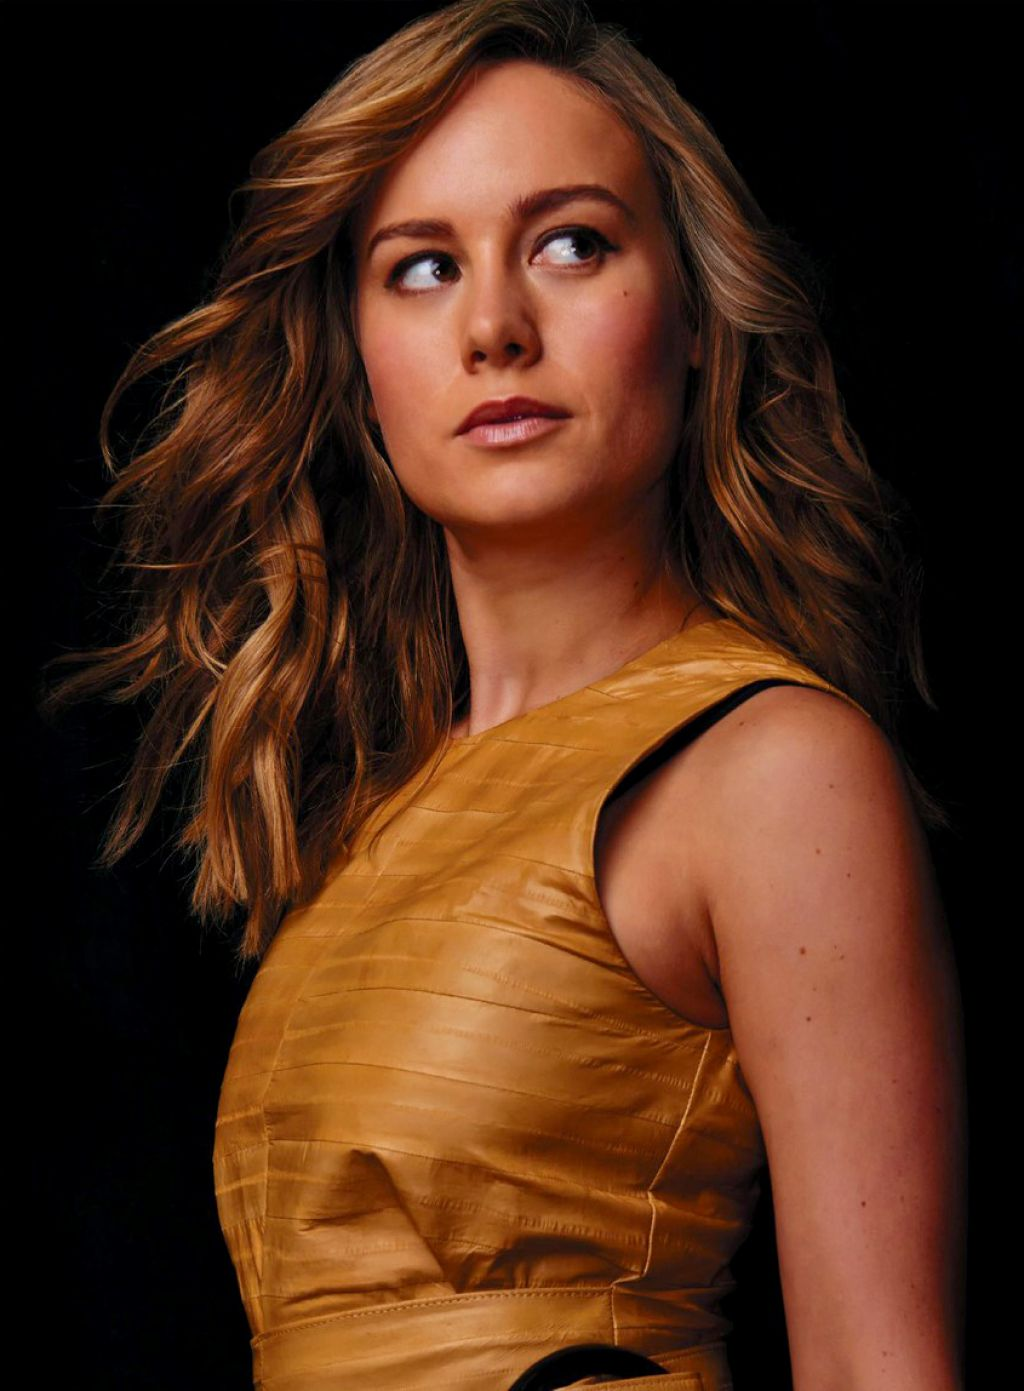 Brie Larson Photoshoot For Backstage October 2015